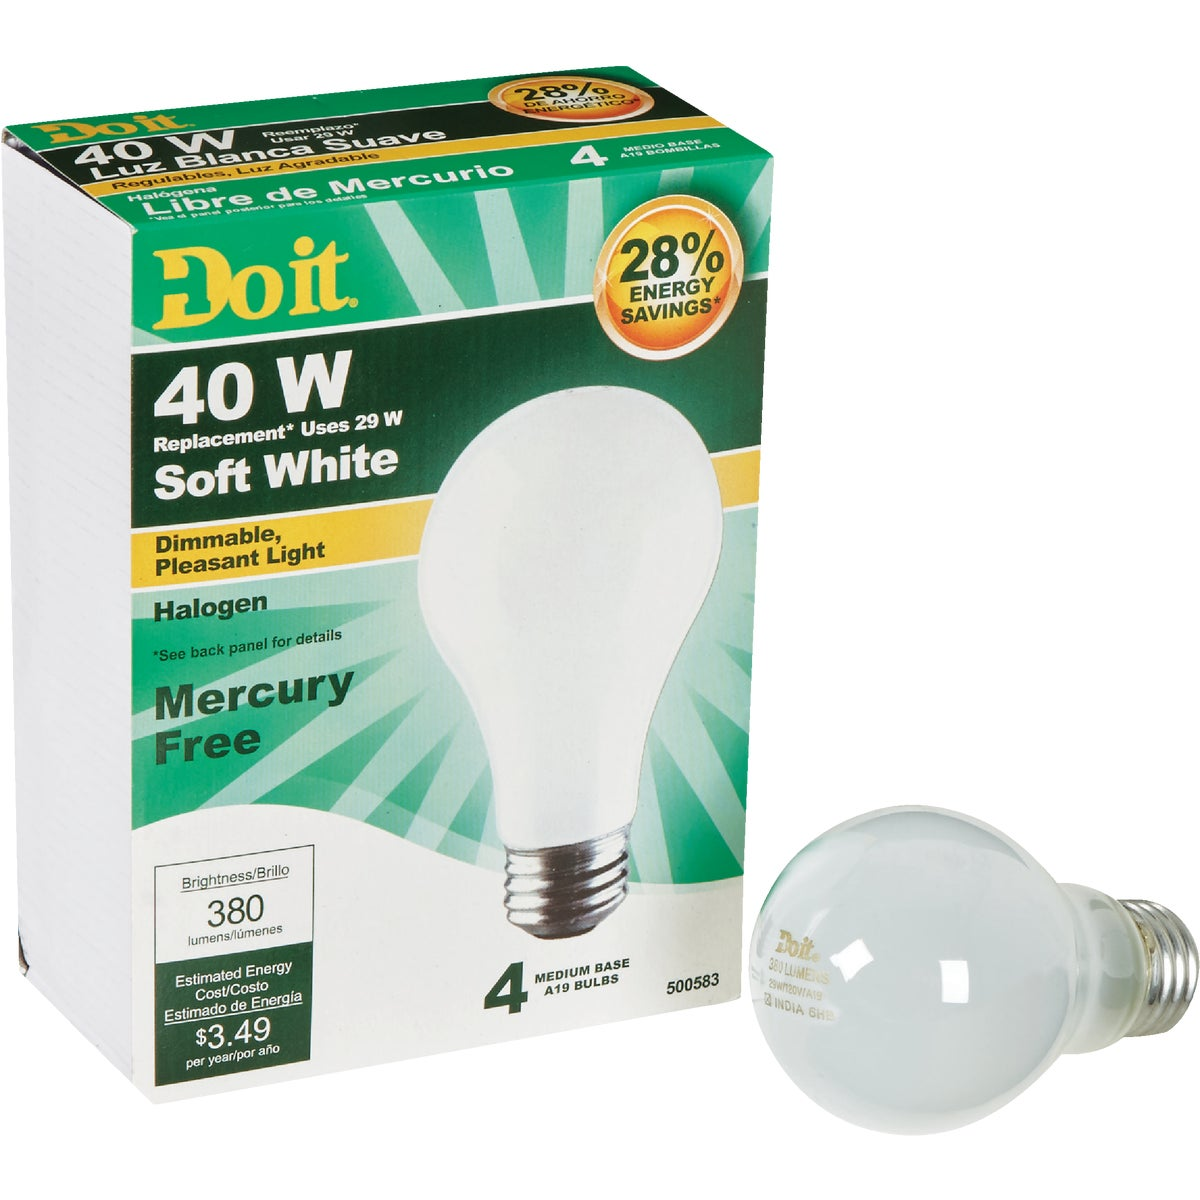 Do it A19 Halogen Light Bulb